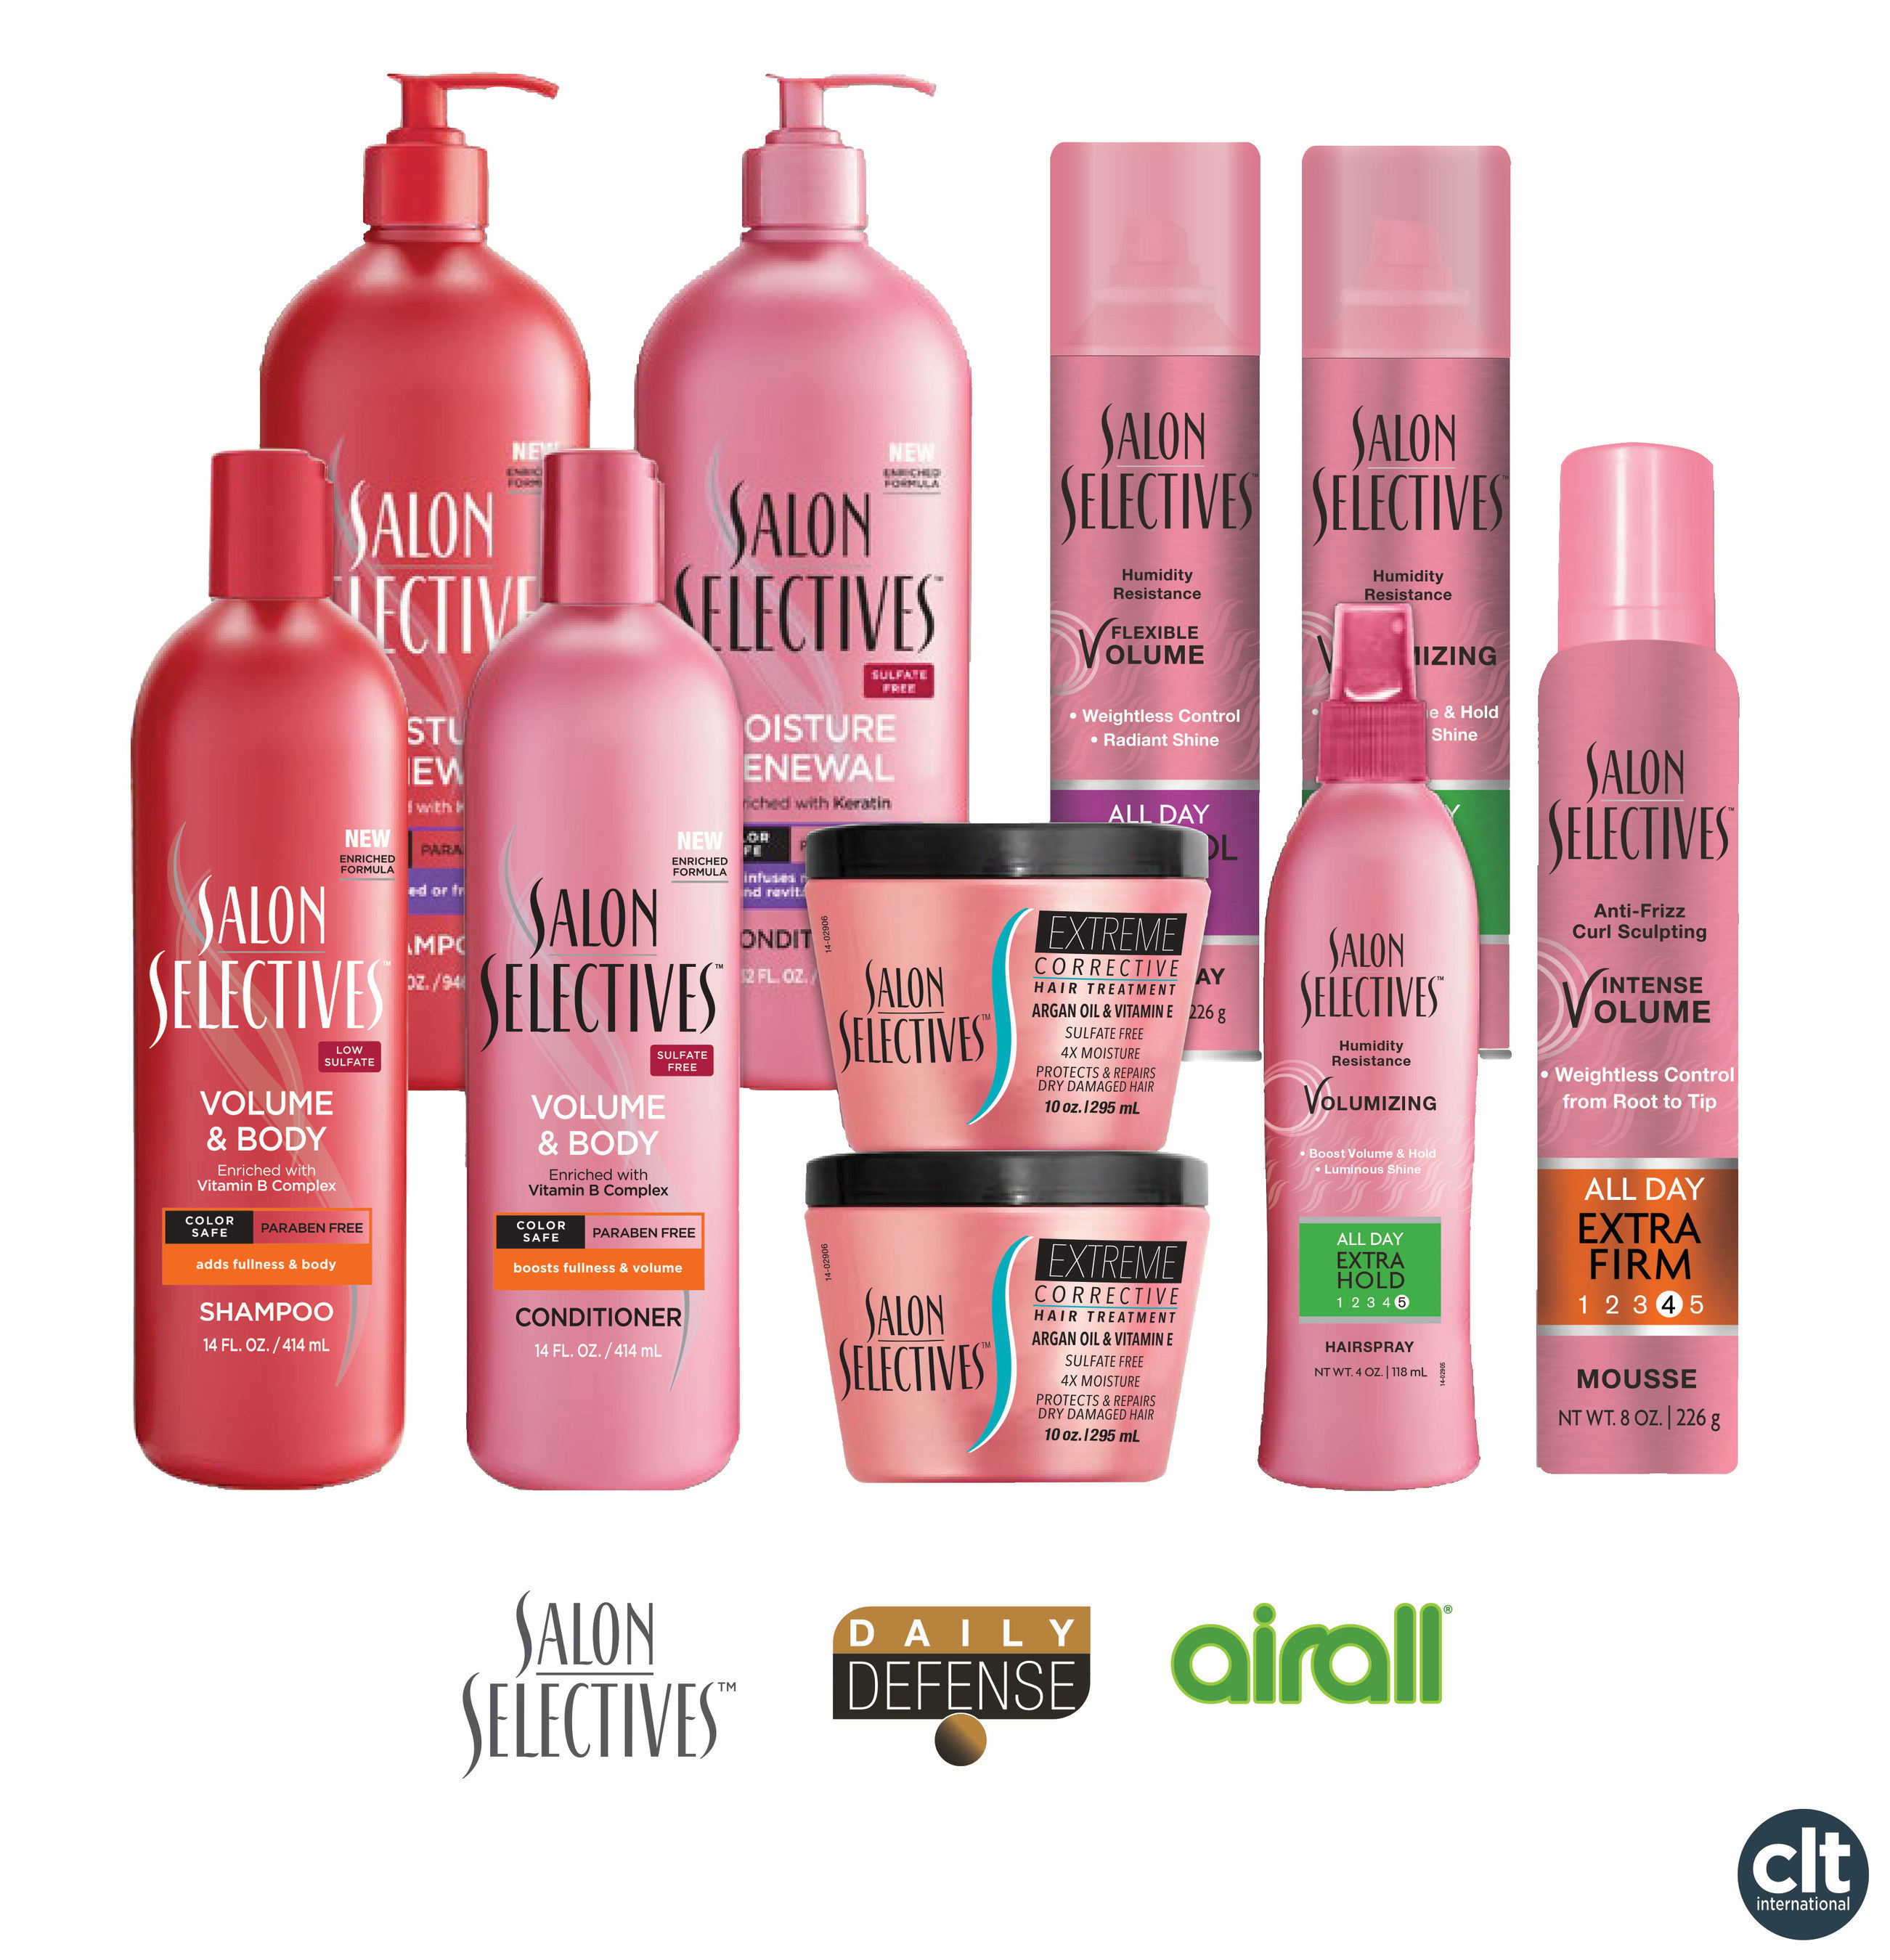 CLT International Announces Acquisition of Additional Rights to Salon Selectives Beauty & Personal